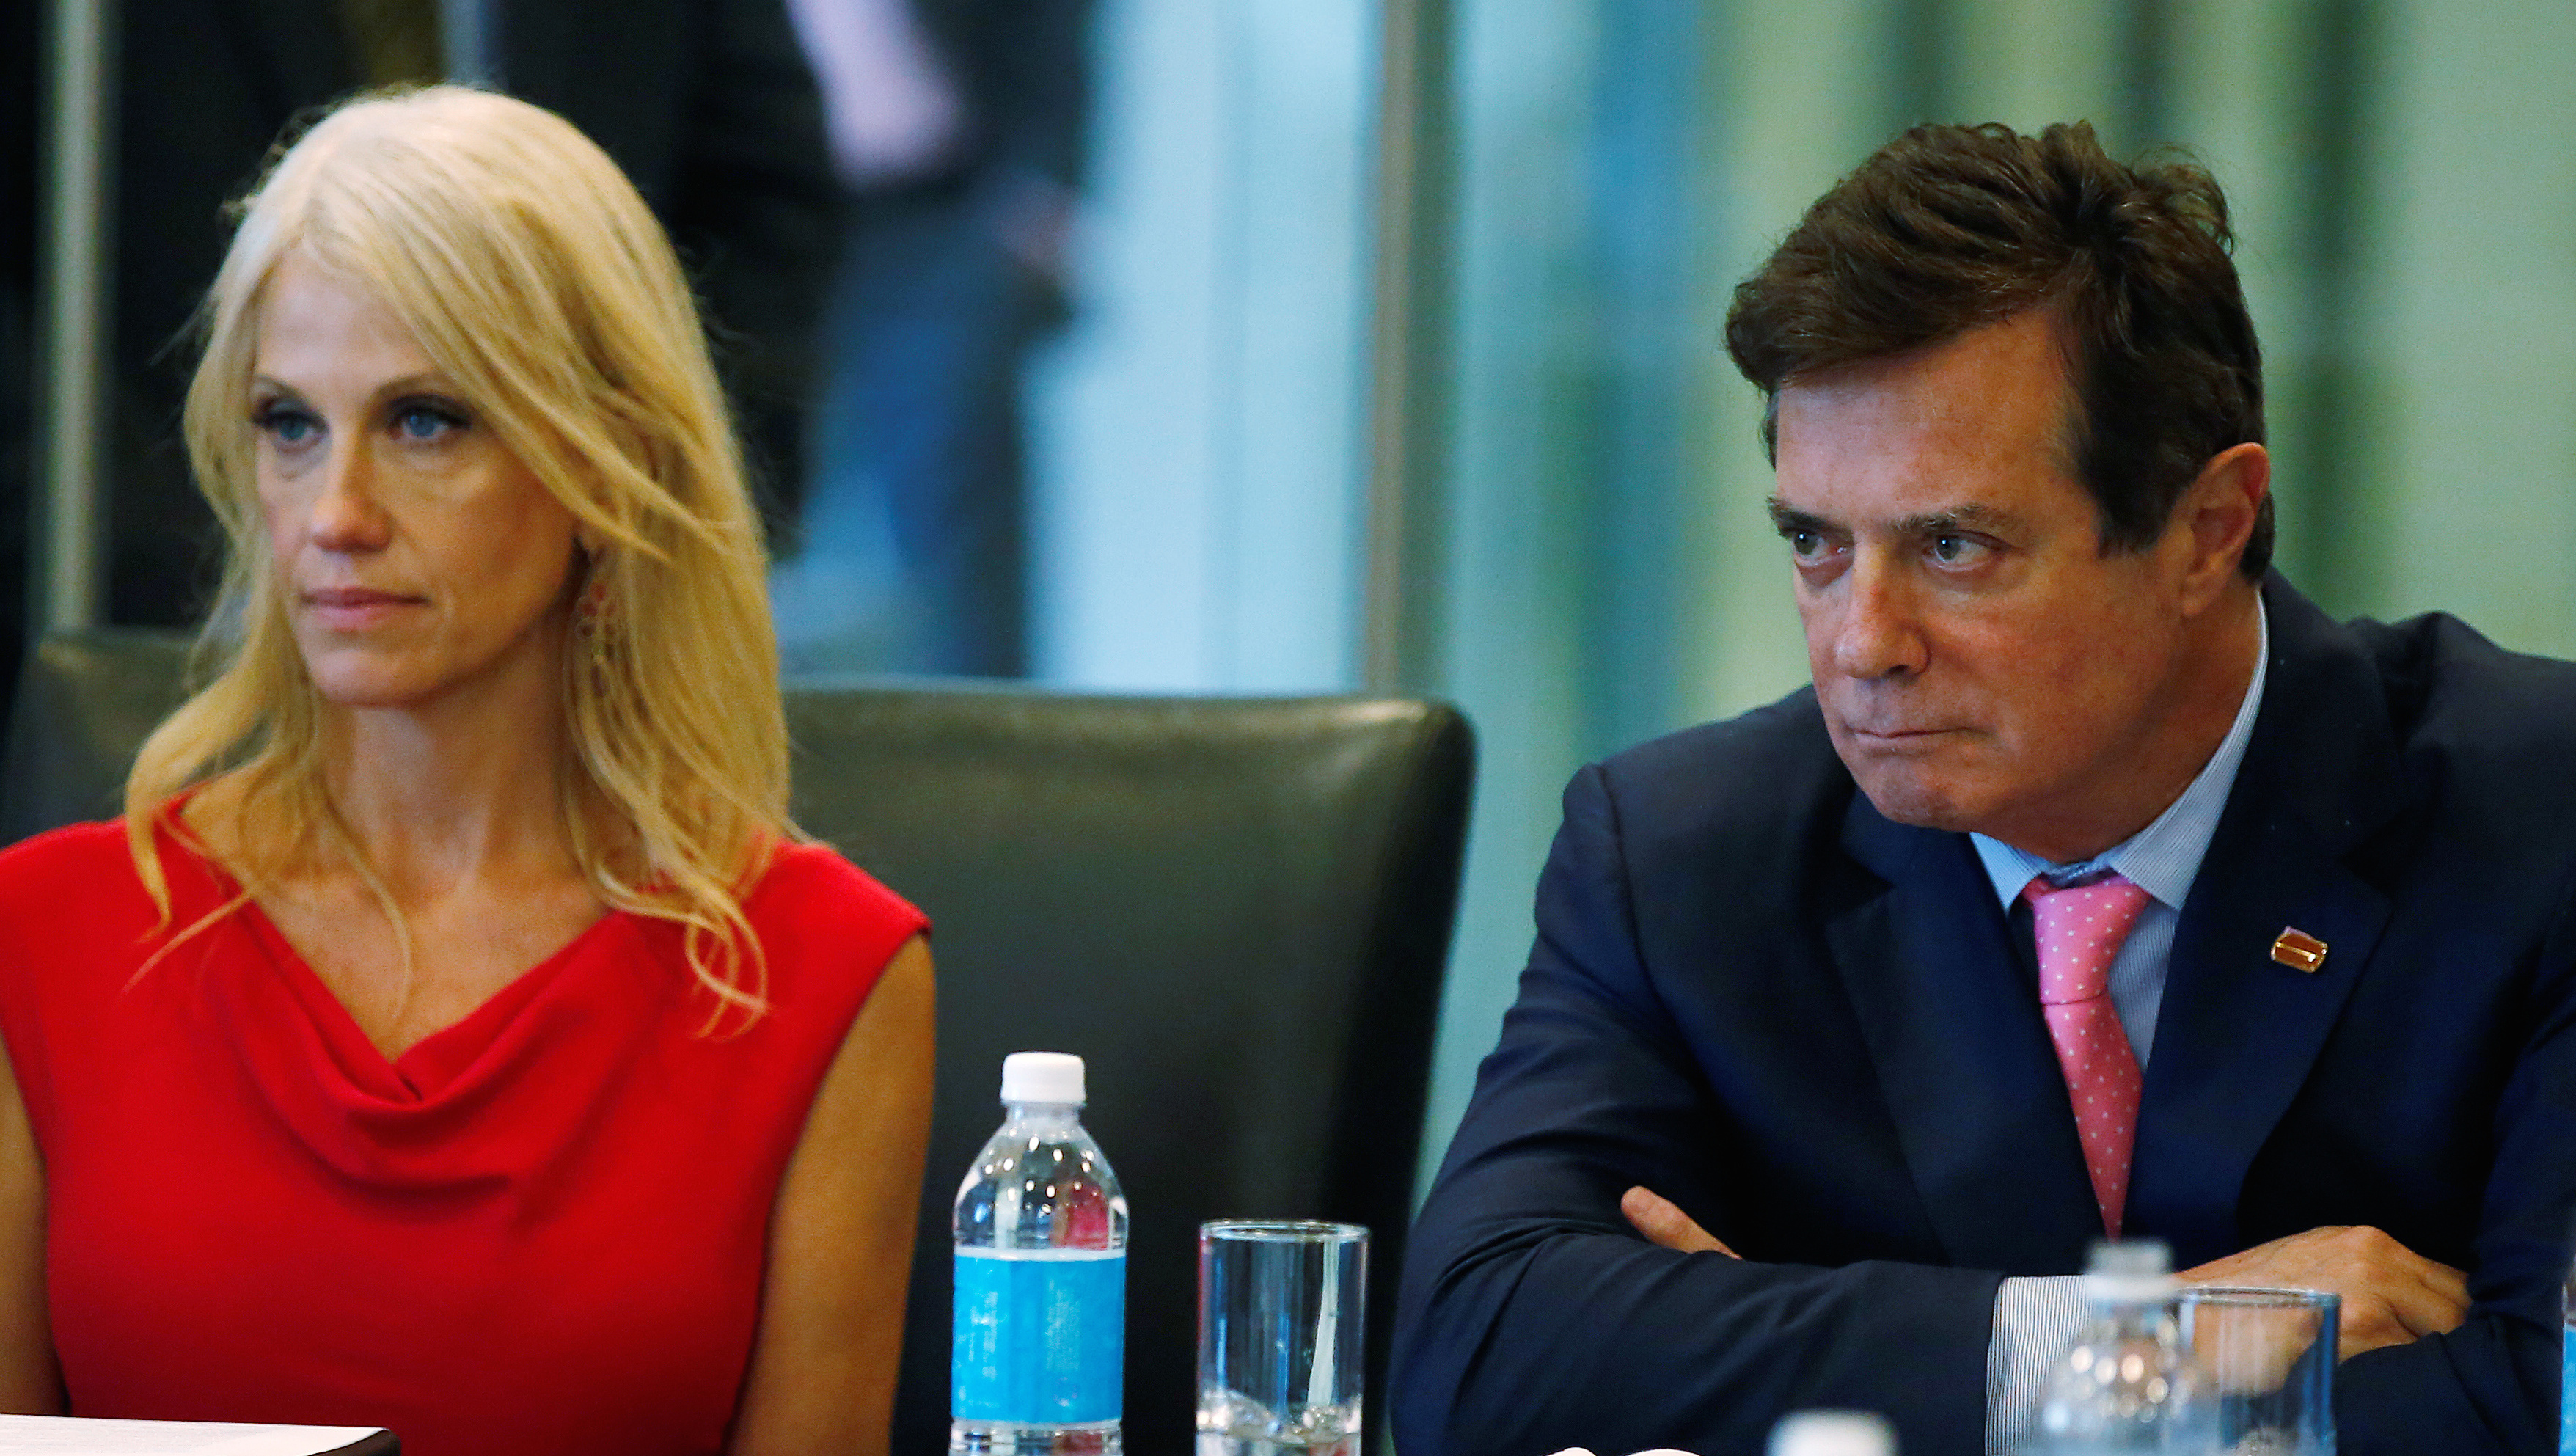 Campaign manager Kellyanne Conway and Paul Manafort of Republican presidential nominee Donald Trump's staff speak during a round table discussion on security at Trump Tower in the Manhattan borough of New York, U.S., August 17, 2016. Picture taken August 17, 2016.